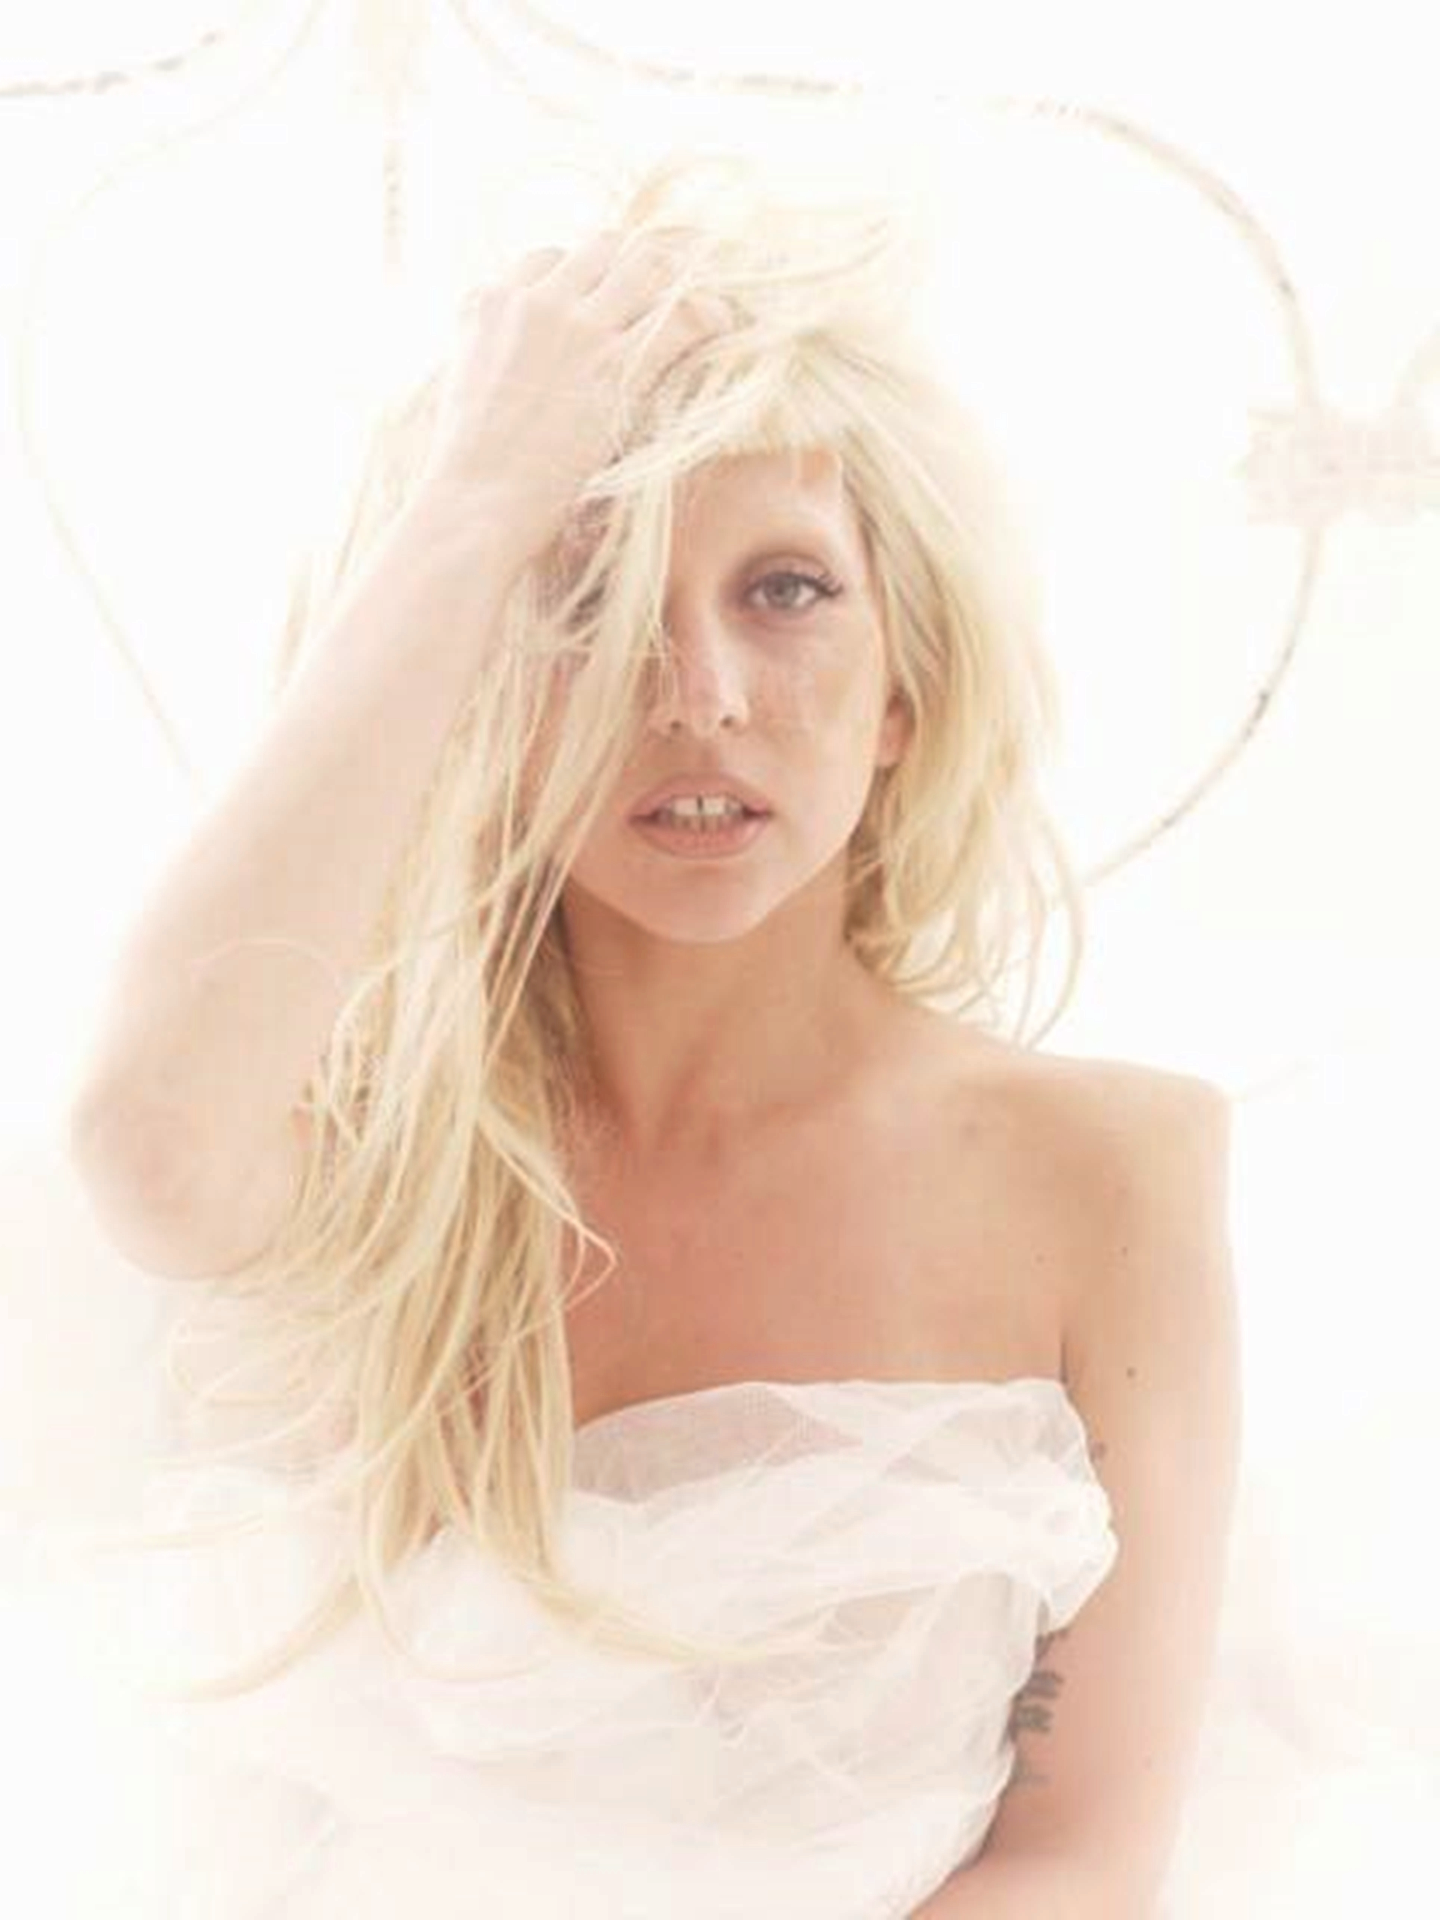 never-before-seen promo pics for Born This Way